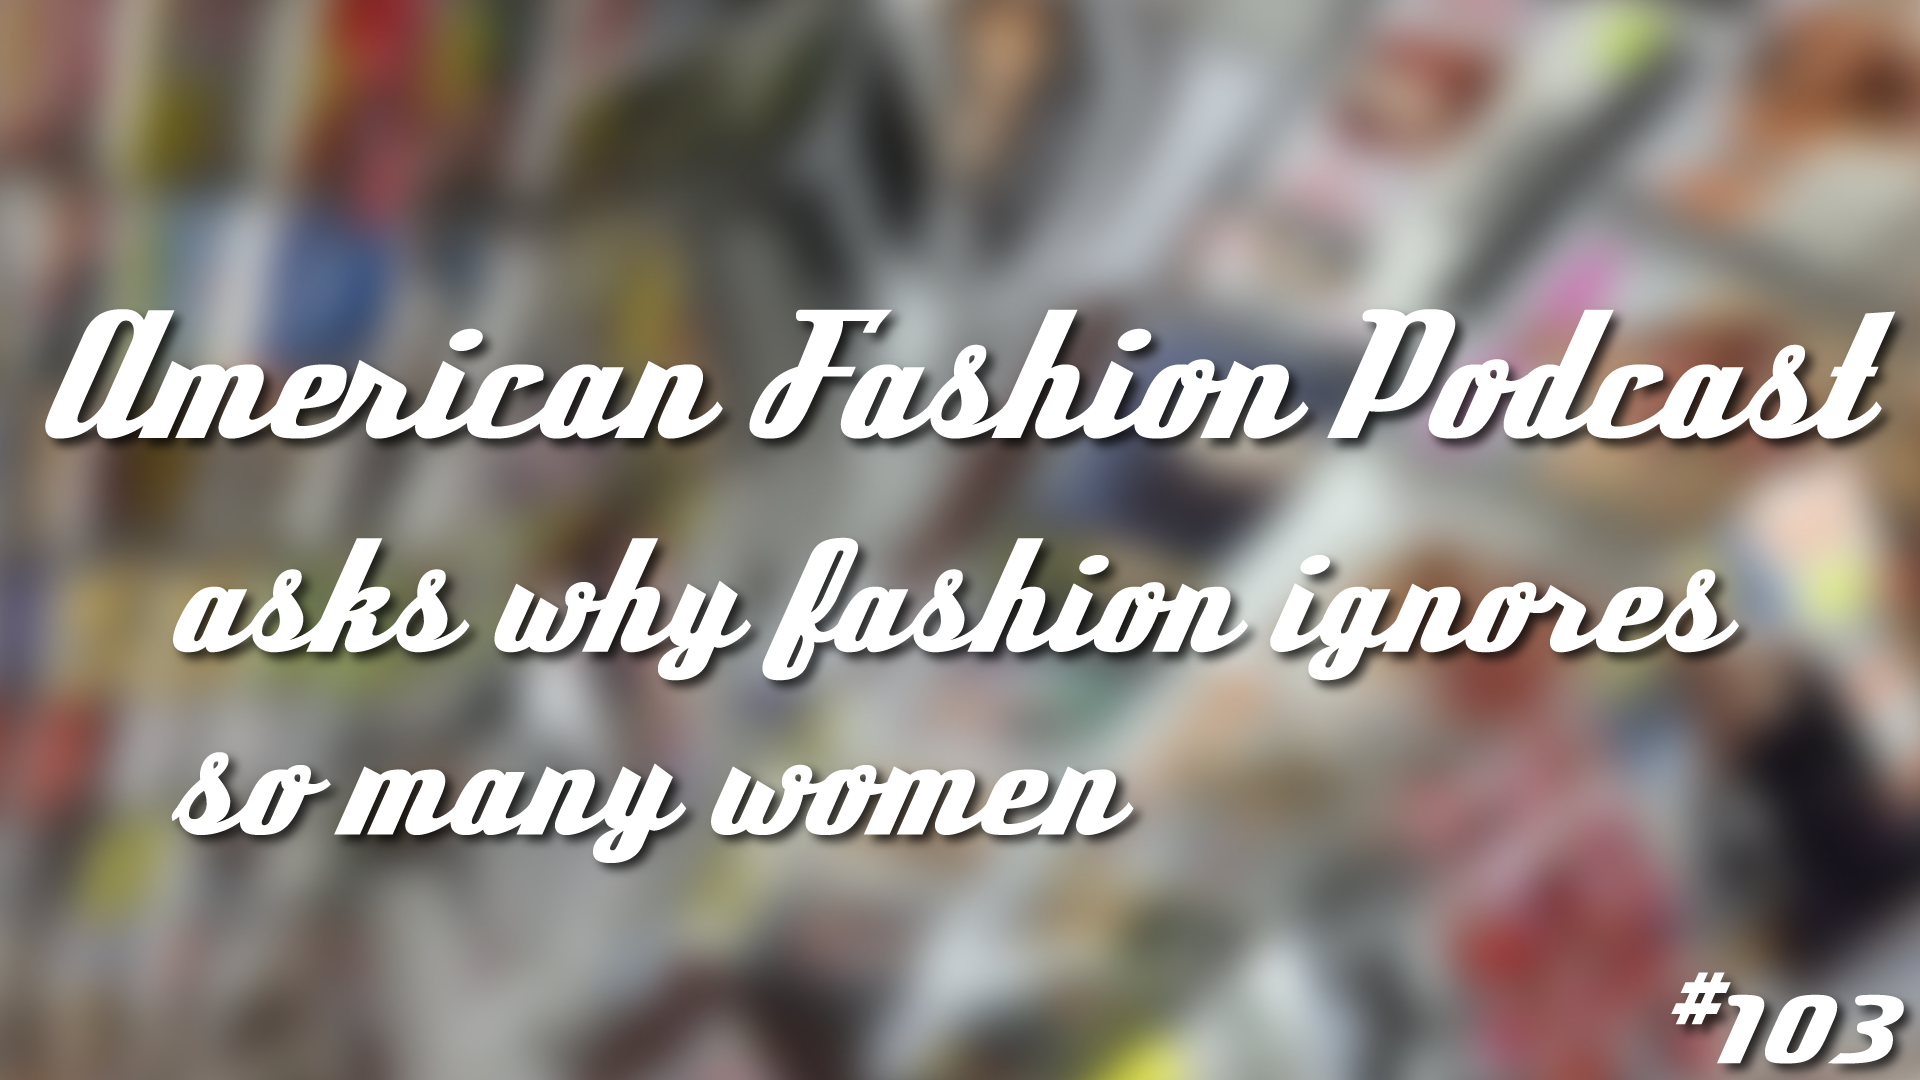 Fashion Ignores Many Women